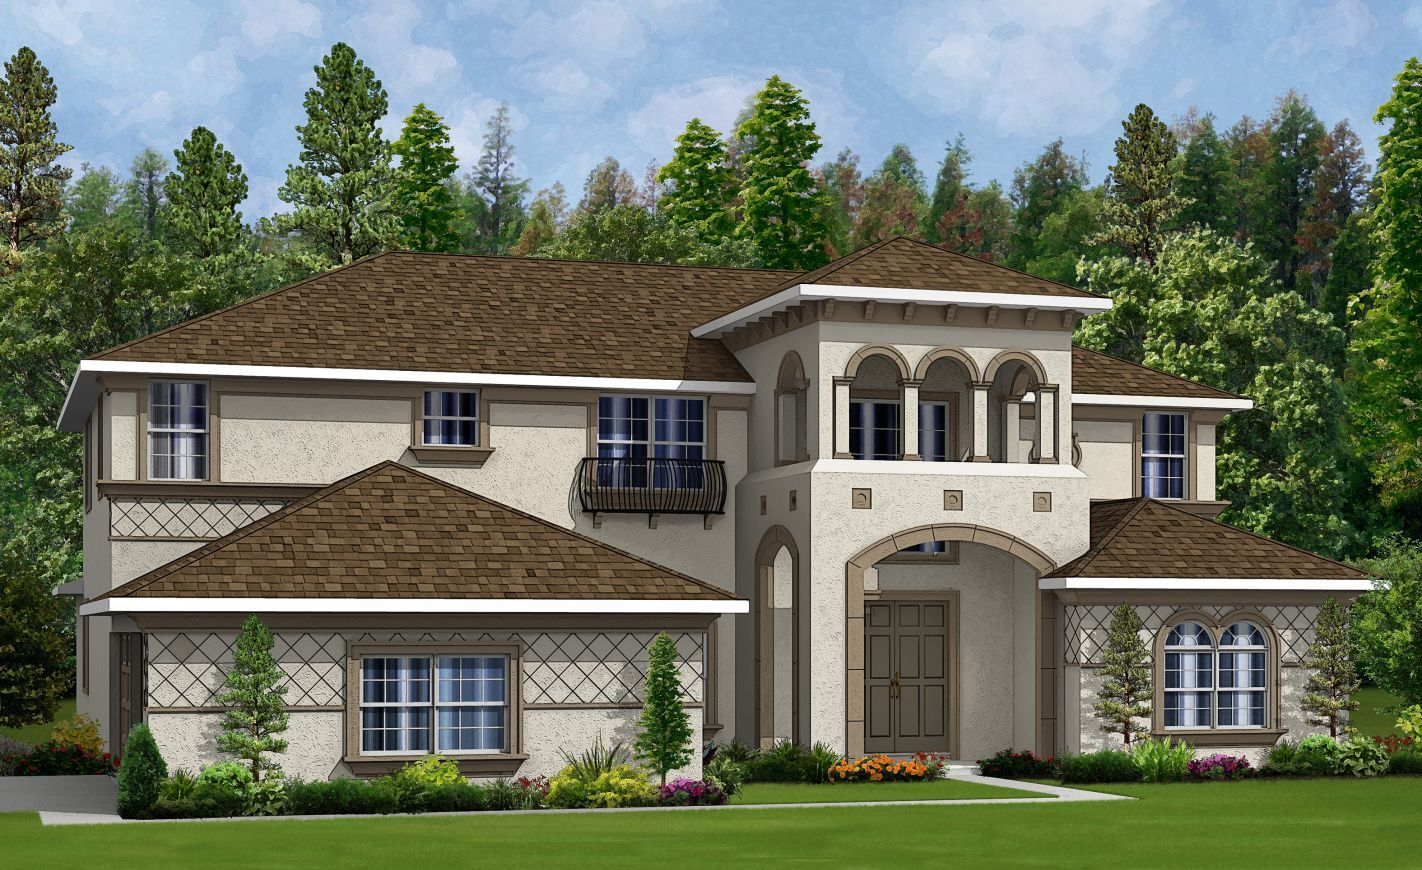 North shore at lake hart new homes new homes for sale in for North shore home builders